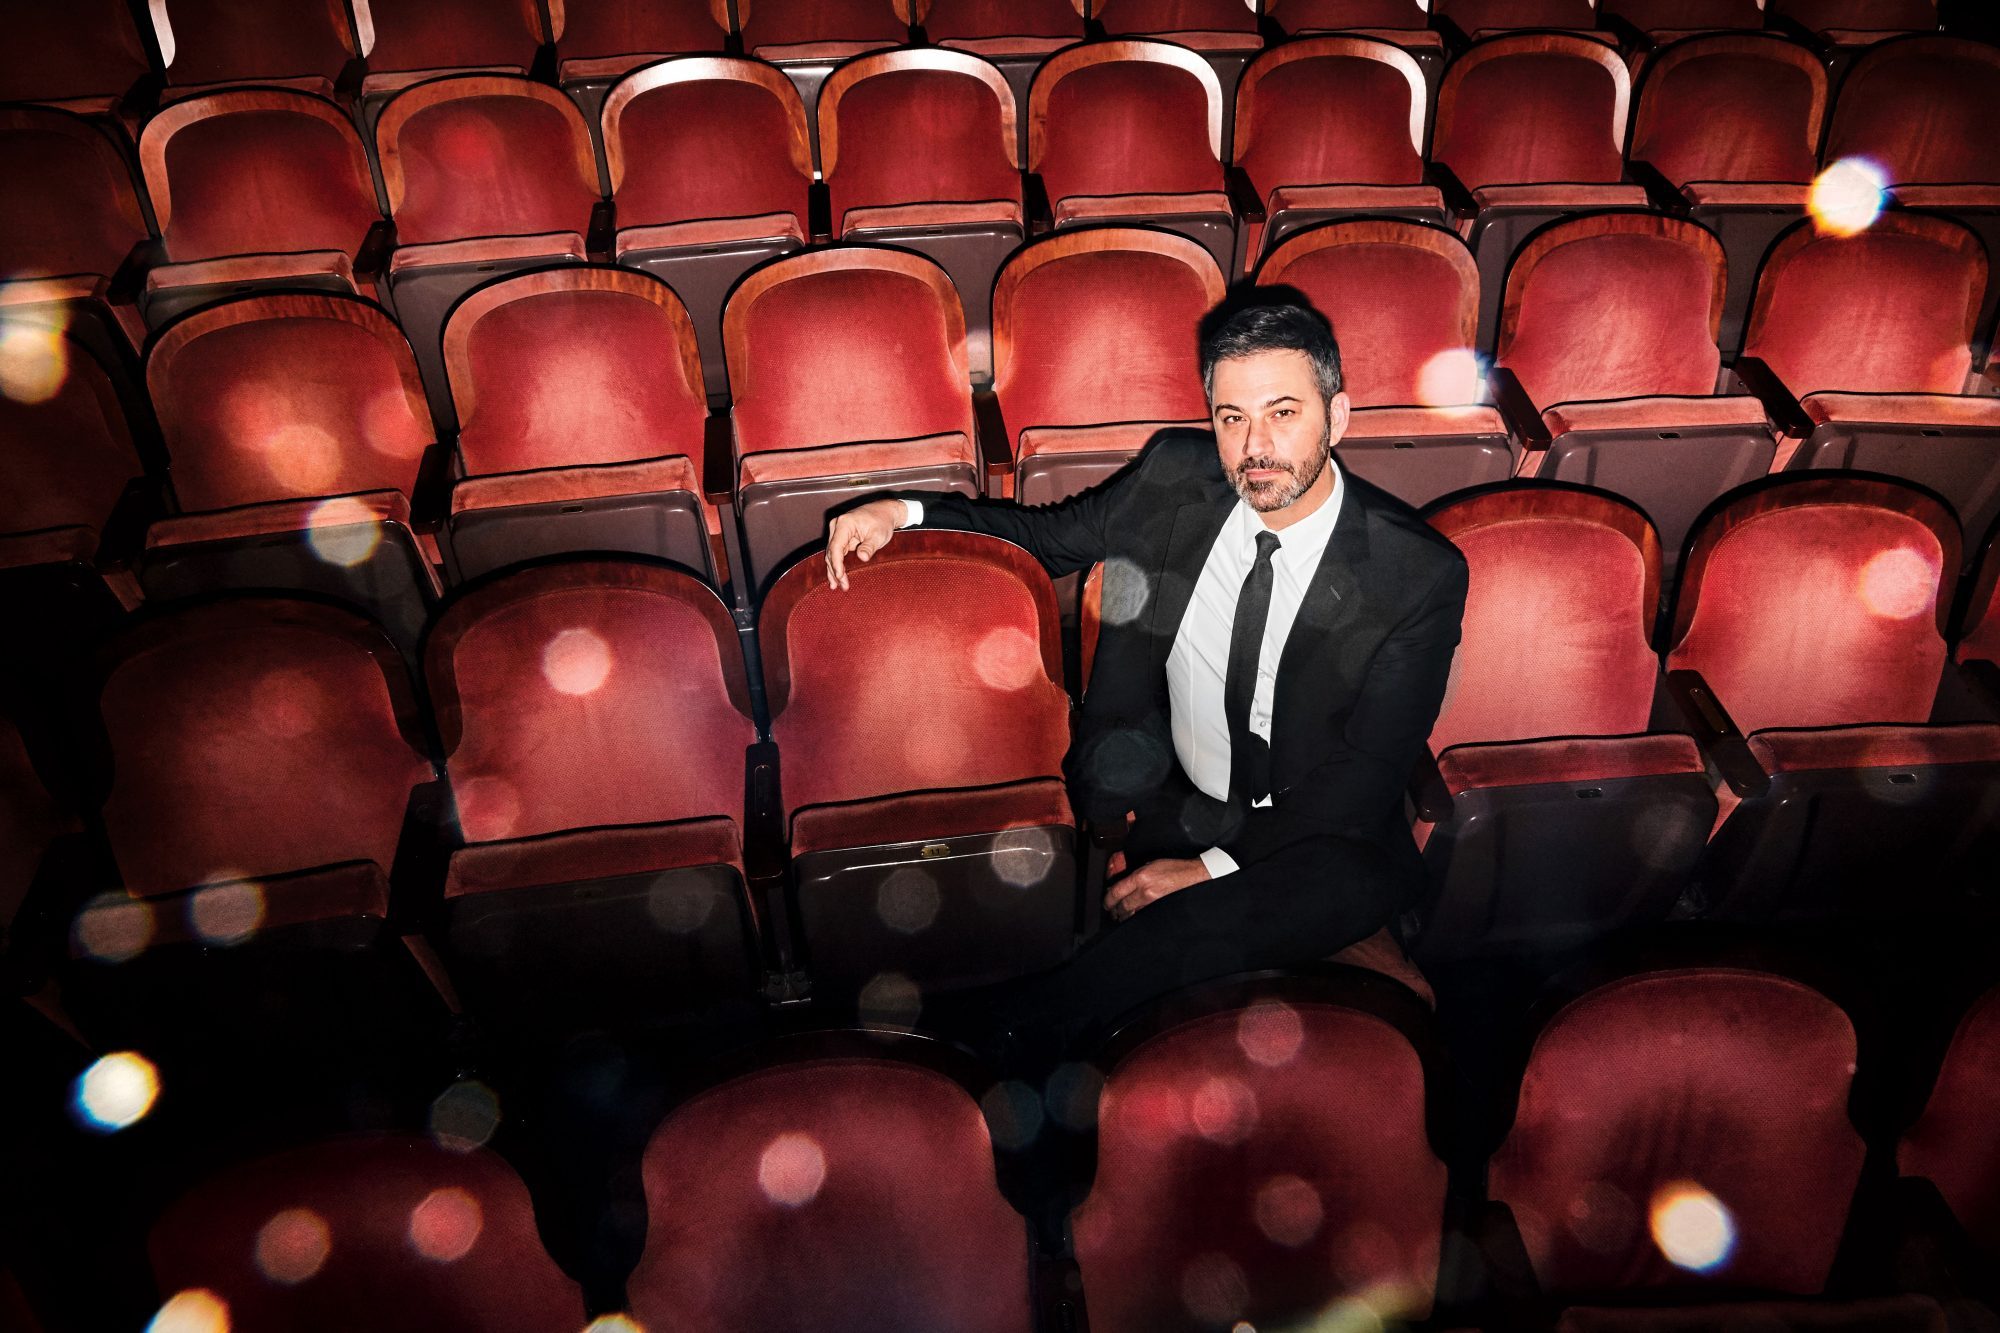 Jimmy Kimmel Talks Teaching Kids About Money People Com His birthday, what he did before fame, his family life, fun trivia facts, popularity he began his jimmy kimmel live! jimmy kimmel talks teaching kids about